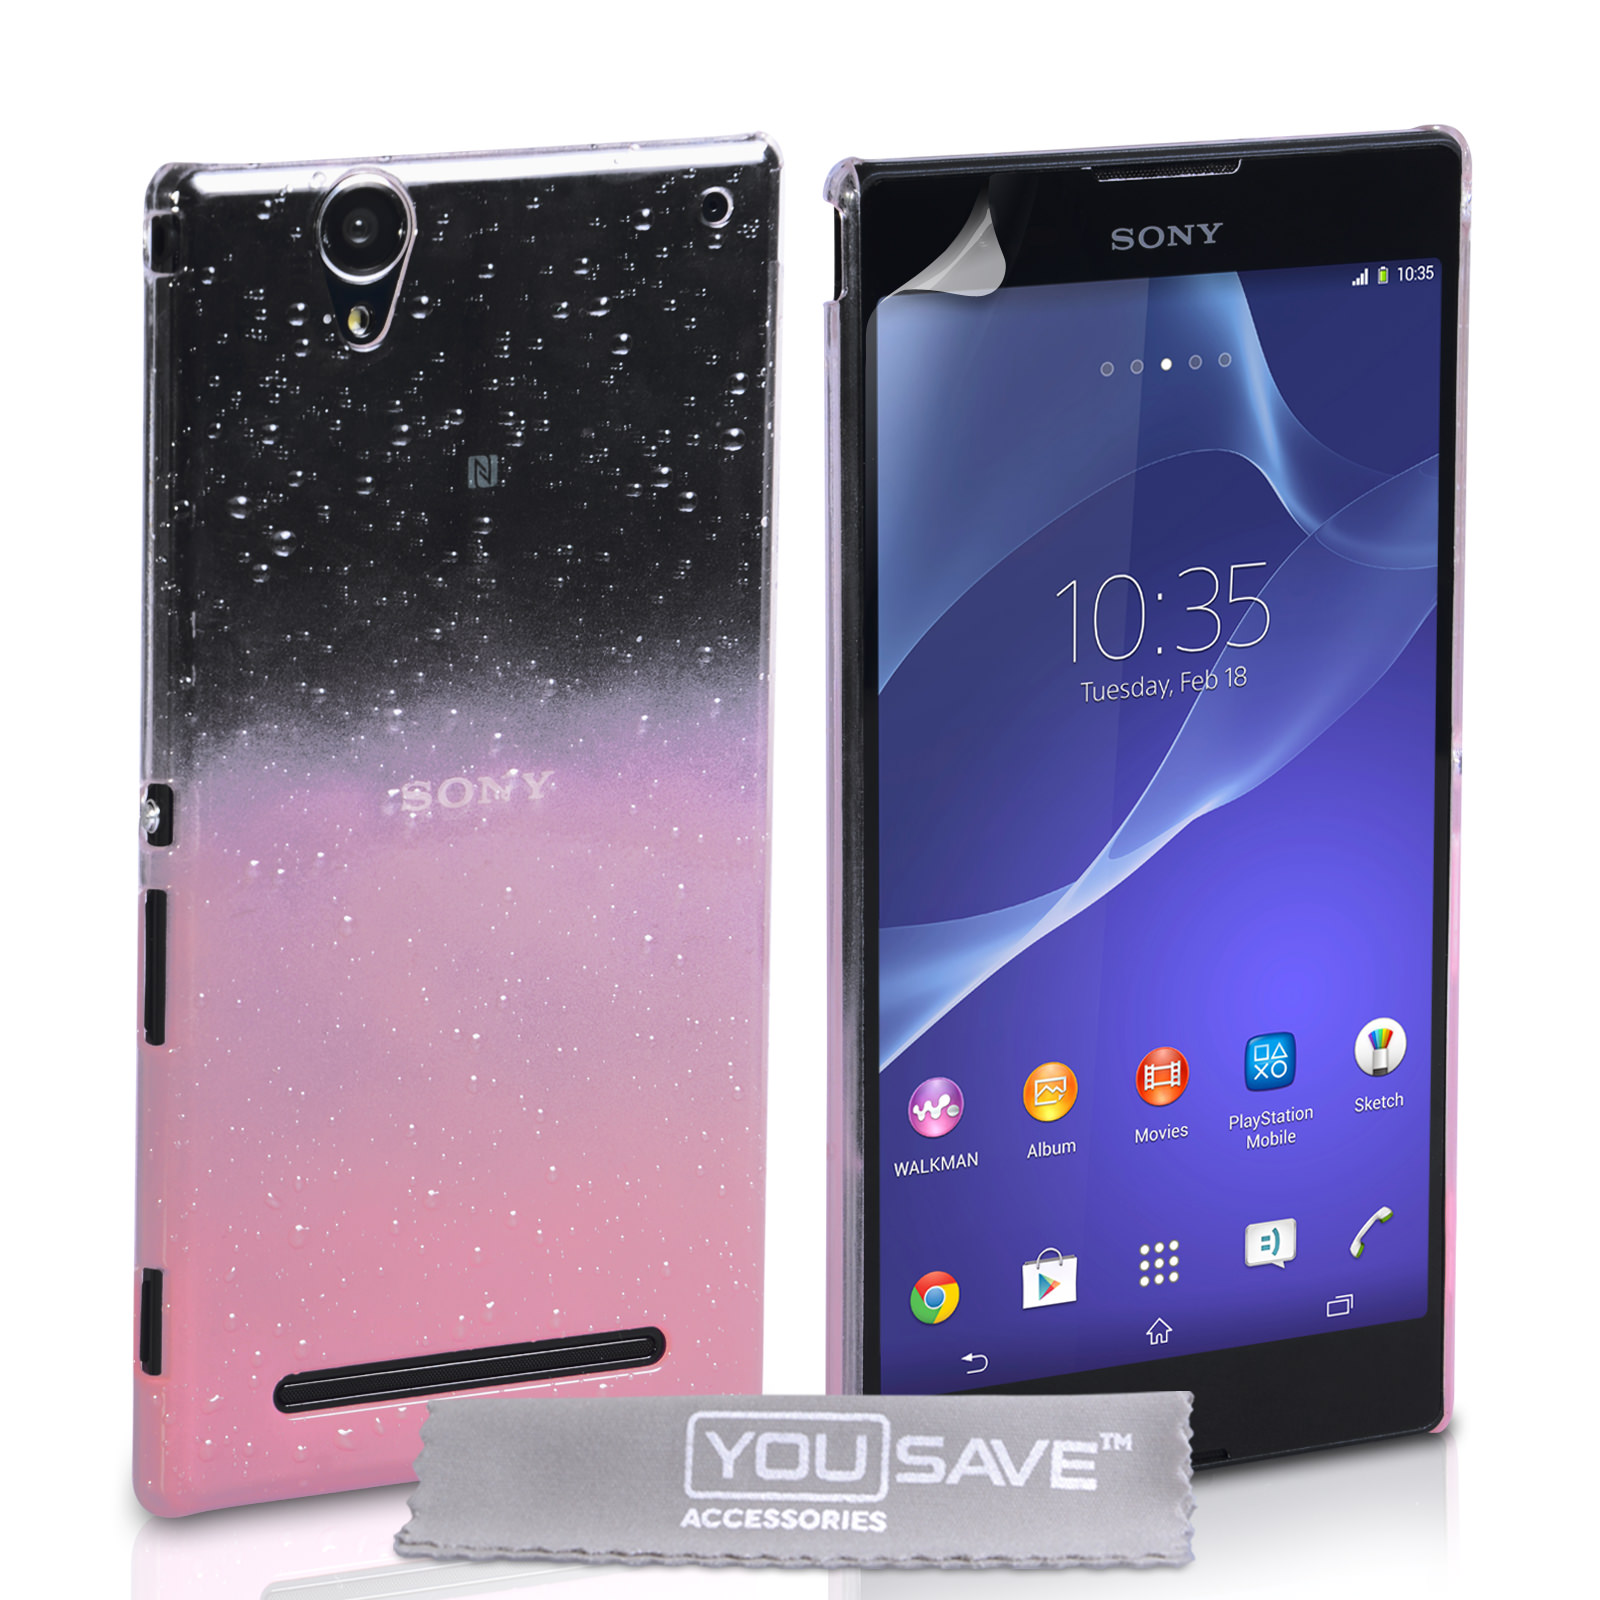 YouSave Sony Xperia T2 Ultra Raindrop Hard Case - Baby Pink-Clear